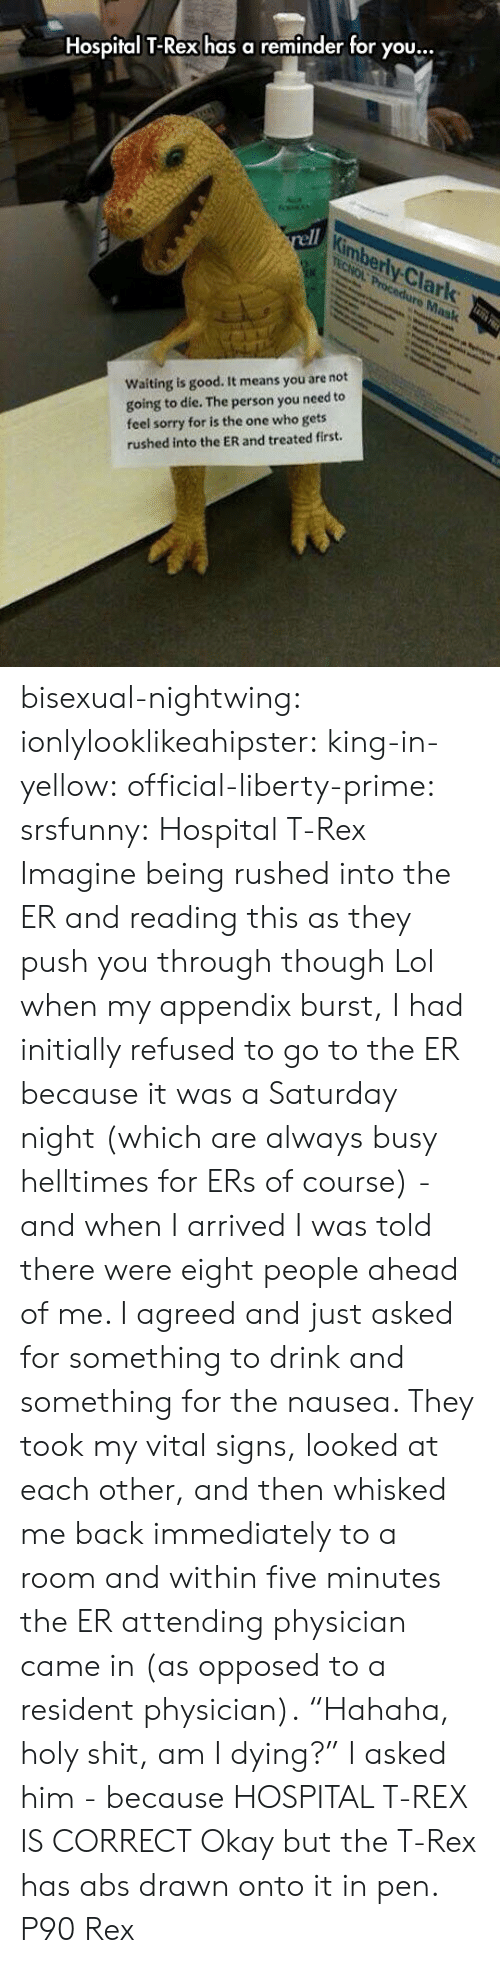 "Lol, Shit, and Sorry: Hospital T-Rex has a reminder for you.  ty.Cİ  lark  Waiting is good. It means you are not  going to die. The person you need to  feel sorry for is the one who gets  rushed into the ER and treated first. bisexual-nightwing:  ionlylooklikeahipster:  king-in-yellow:  official-liberty-prime:  srsfunny: Hospital T-Rex  Imagine being rushed into the ER and reading this as they push you through though  Lol when my appendix burst, I had initially refused to go to the ER because it was a Saturday night (which are always busy helltimes for ERs of course) - and when I arrived I was told there were eight people ahead of me. I agreed and just asked for something to drink and something for the nausea. They took my vital signs, looked at each other, and then whisked me back immediately to a room and within five minutes the ER attending physician came in (as opposed to a resident physician). ""Hahaha, holy shit, am I dying?"" I asked him - because HOSPITAL T-REX IS CORRECT  Okay but the T-Rex has abs drawn onto it in pen.   P90 Rex"